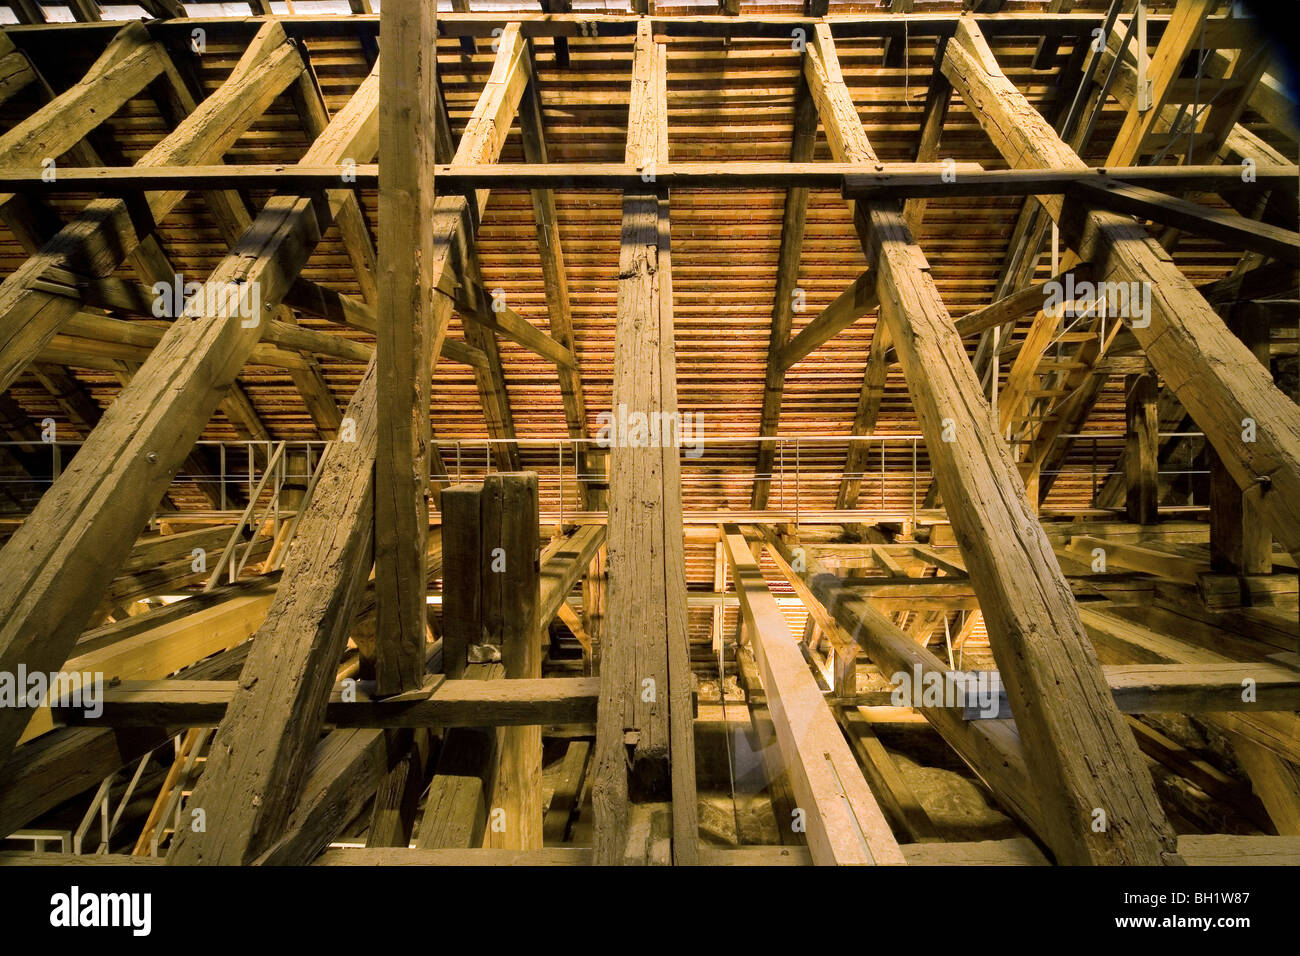 historic roof timbers of the chapel of the Holy Ghost, Berlin - Stock Image